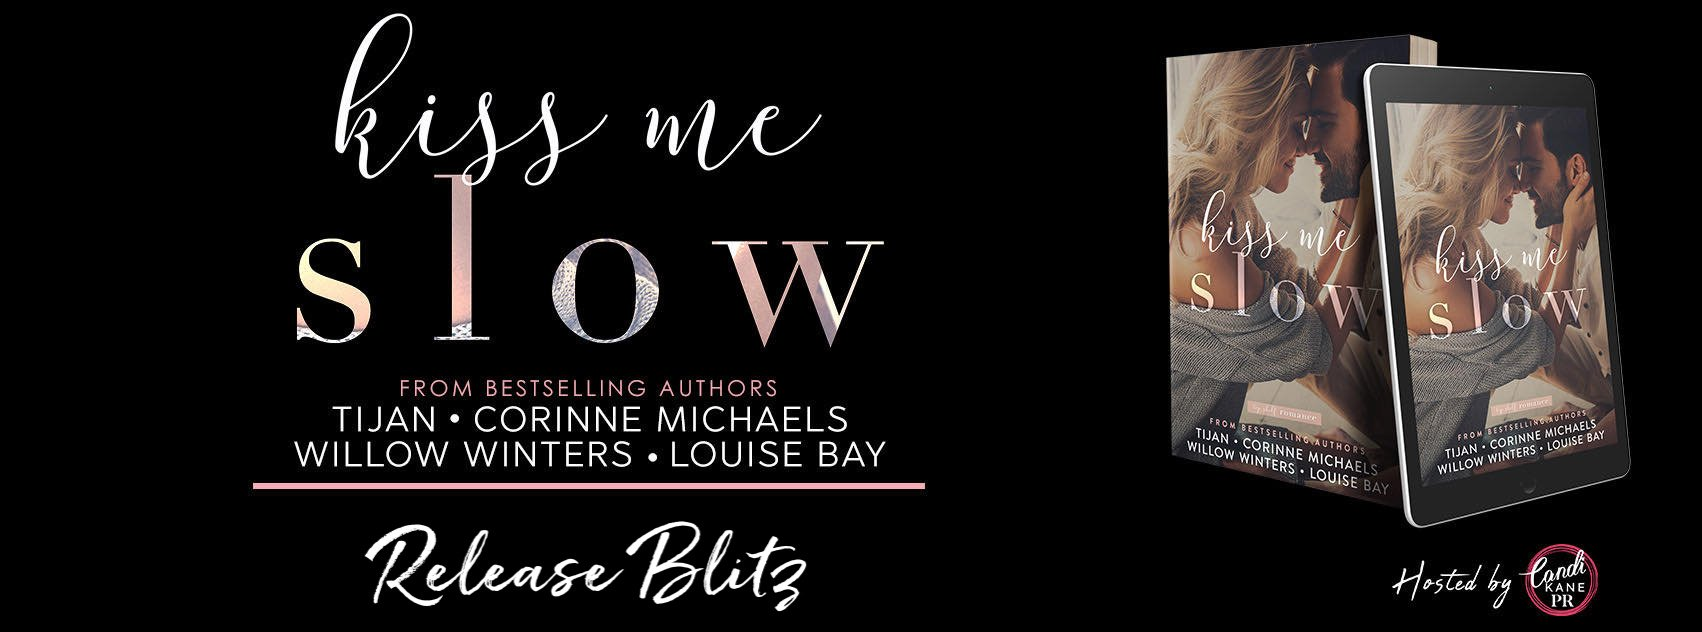 KISS ME SLOW from Top Shelf Romance is LIVE